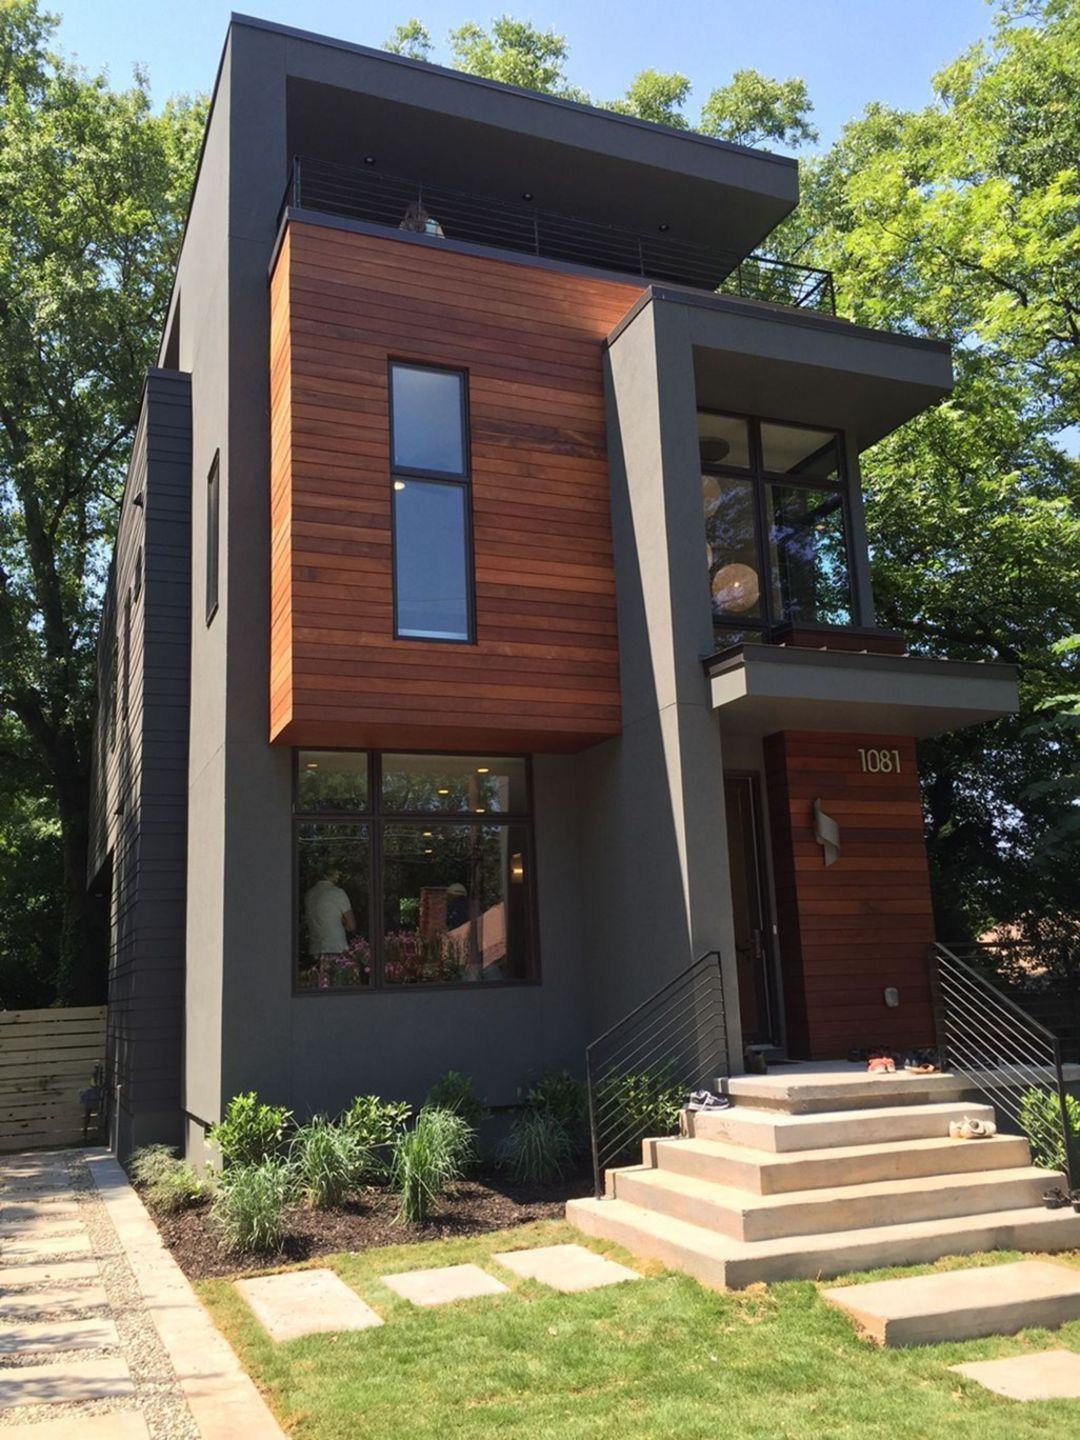 20 Best Modern Tiny Houses Design Ideas For Enjoy Life Every Day In 2020 Tiny House Exterior Contemporary House Design Facade House